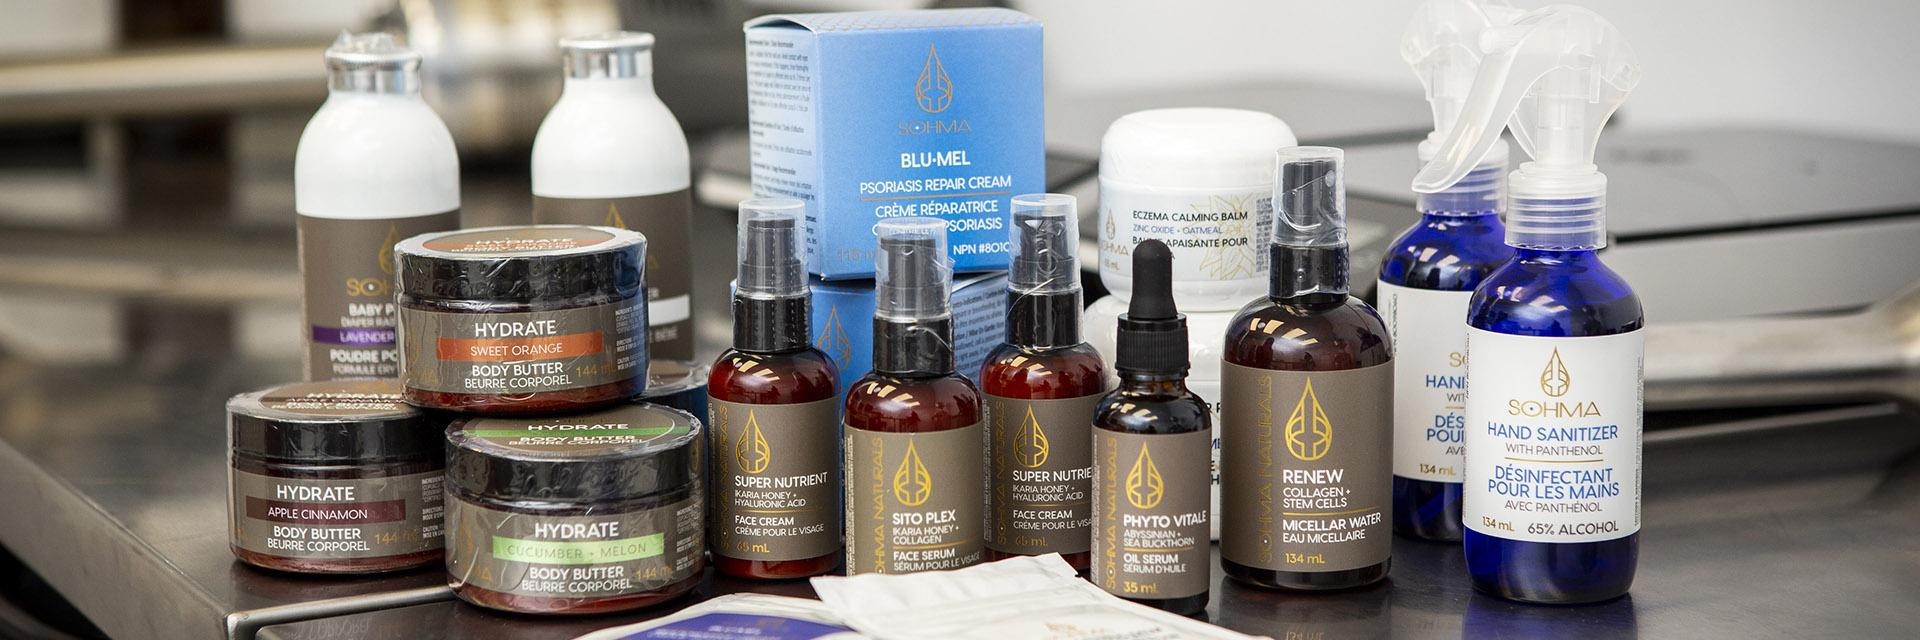 Sohma Naturals products showcased in the lab